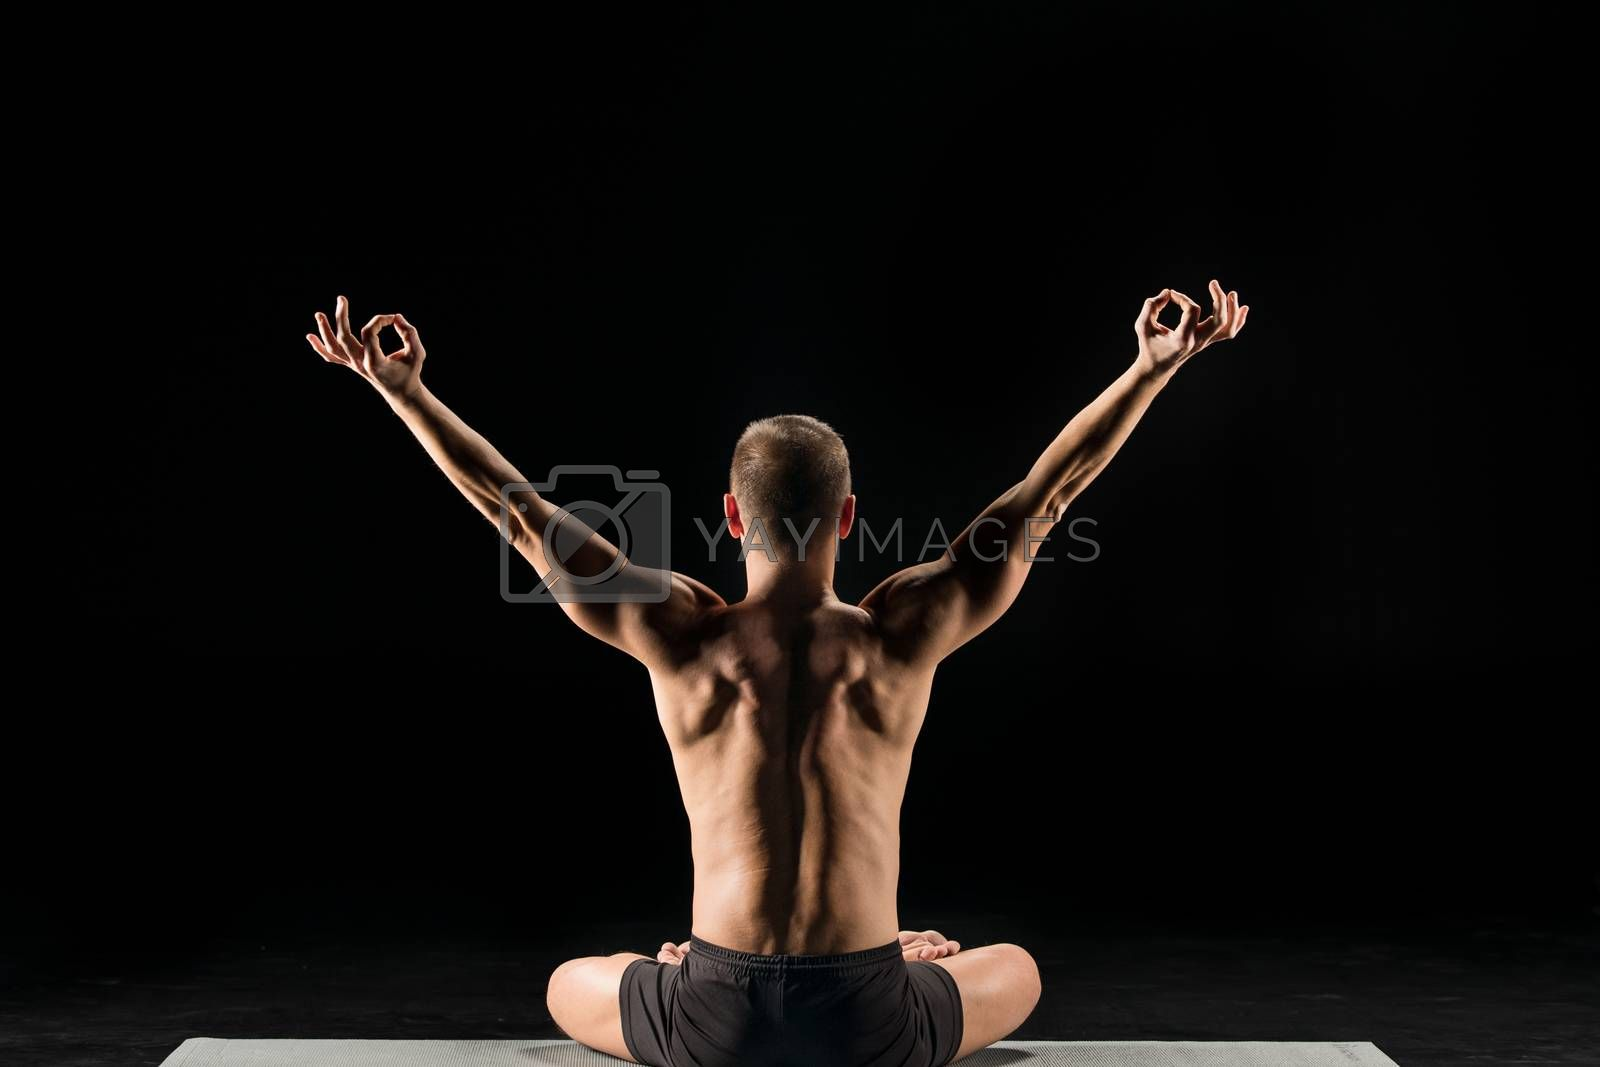 Rear view of man practicing yoga and meditating on yoga mat